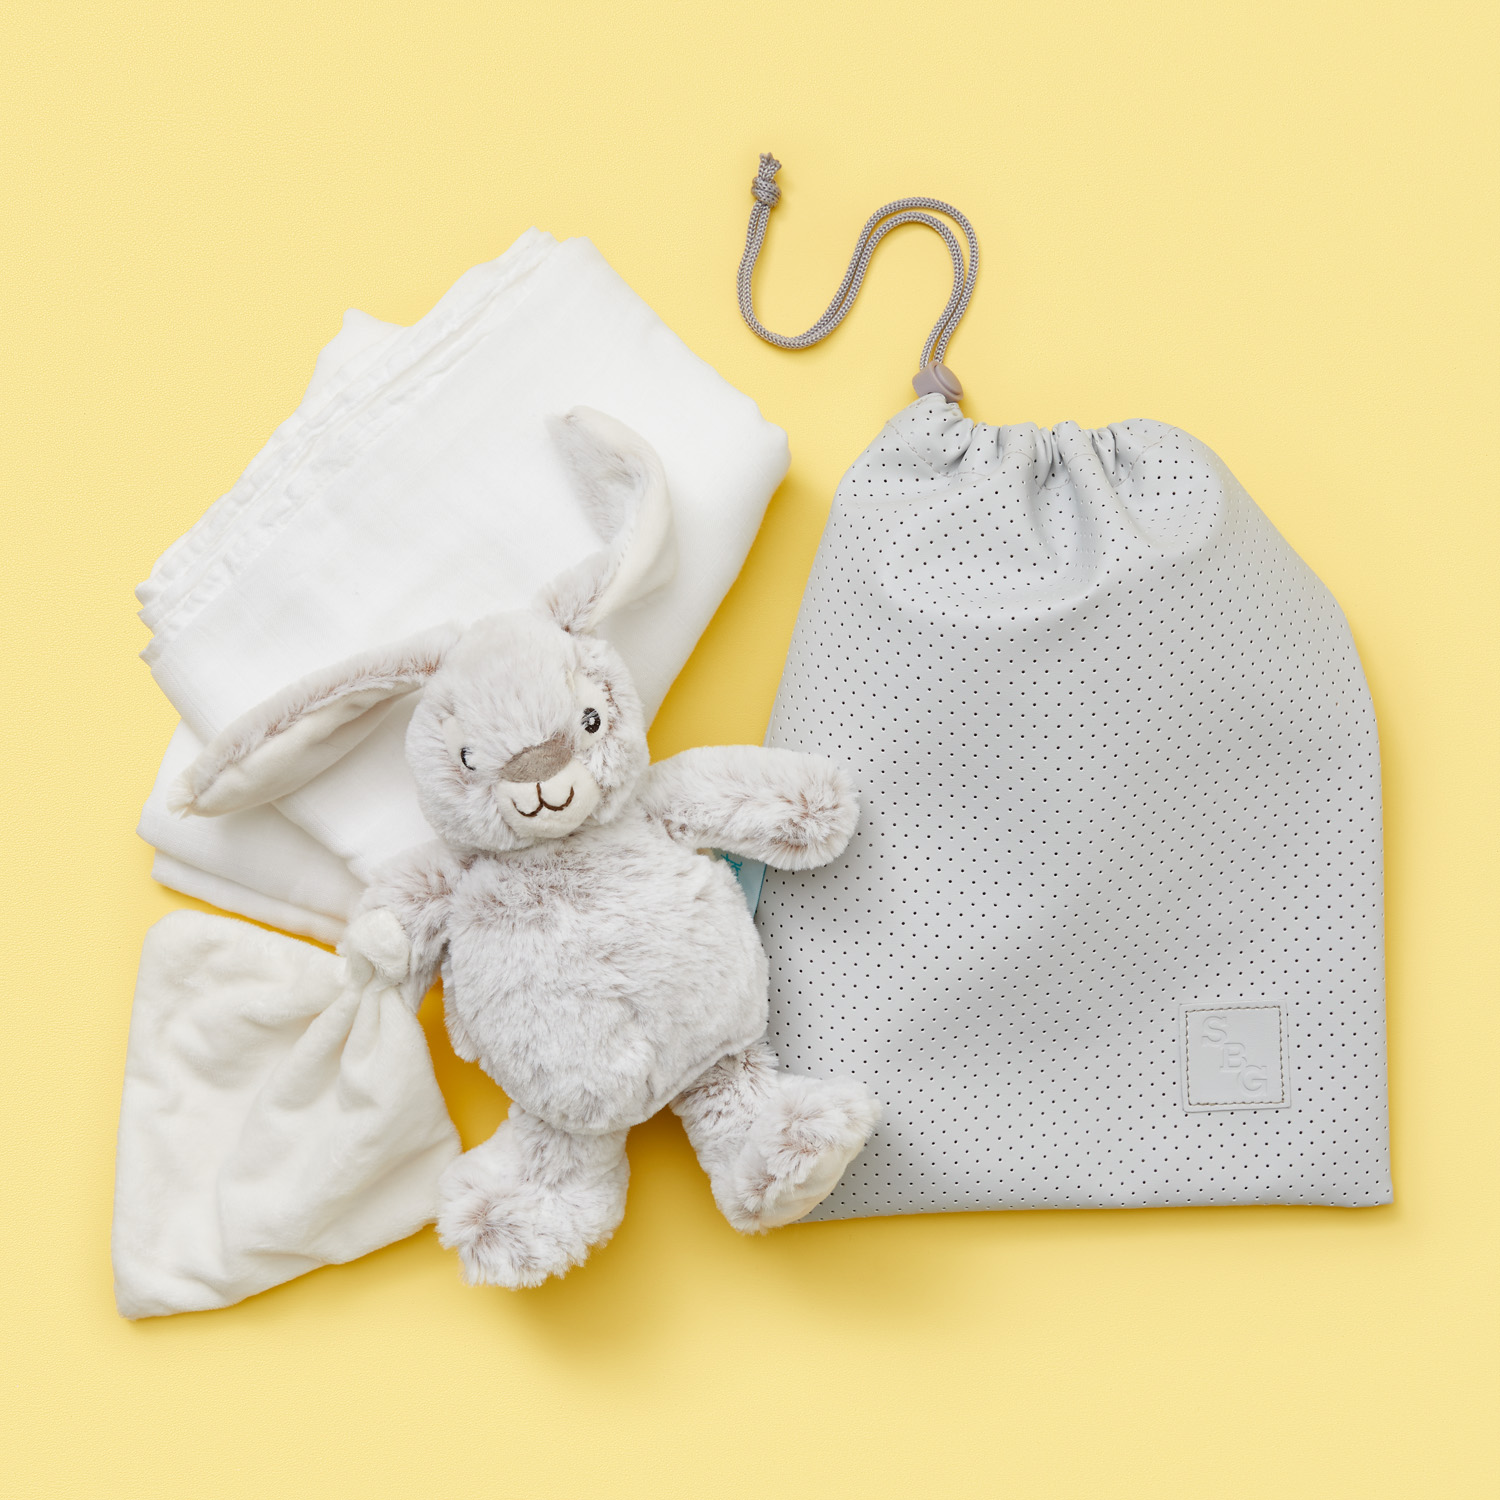 Dou Dou et Compagnie Gift Set for Gender Neutral Baby Gift